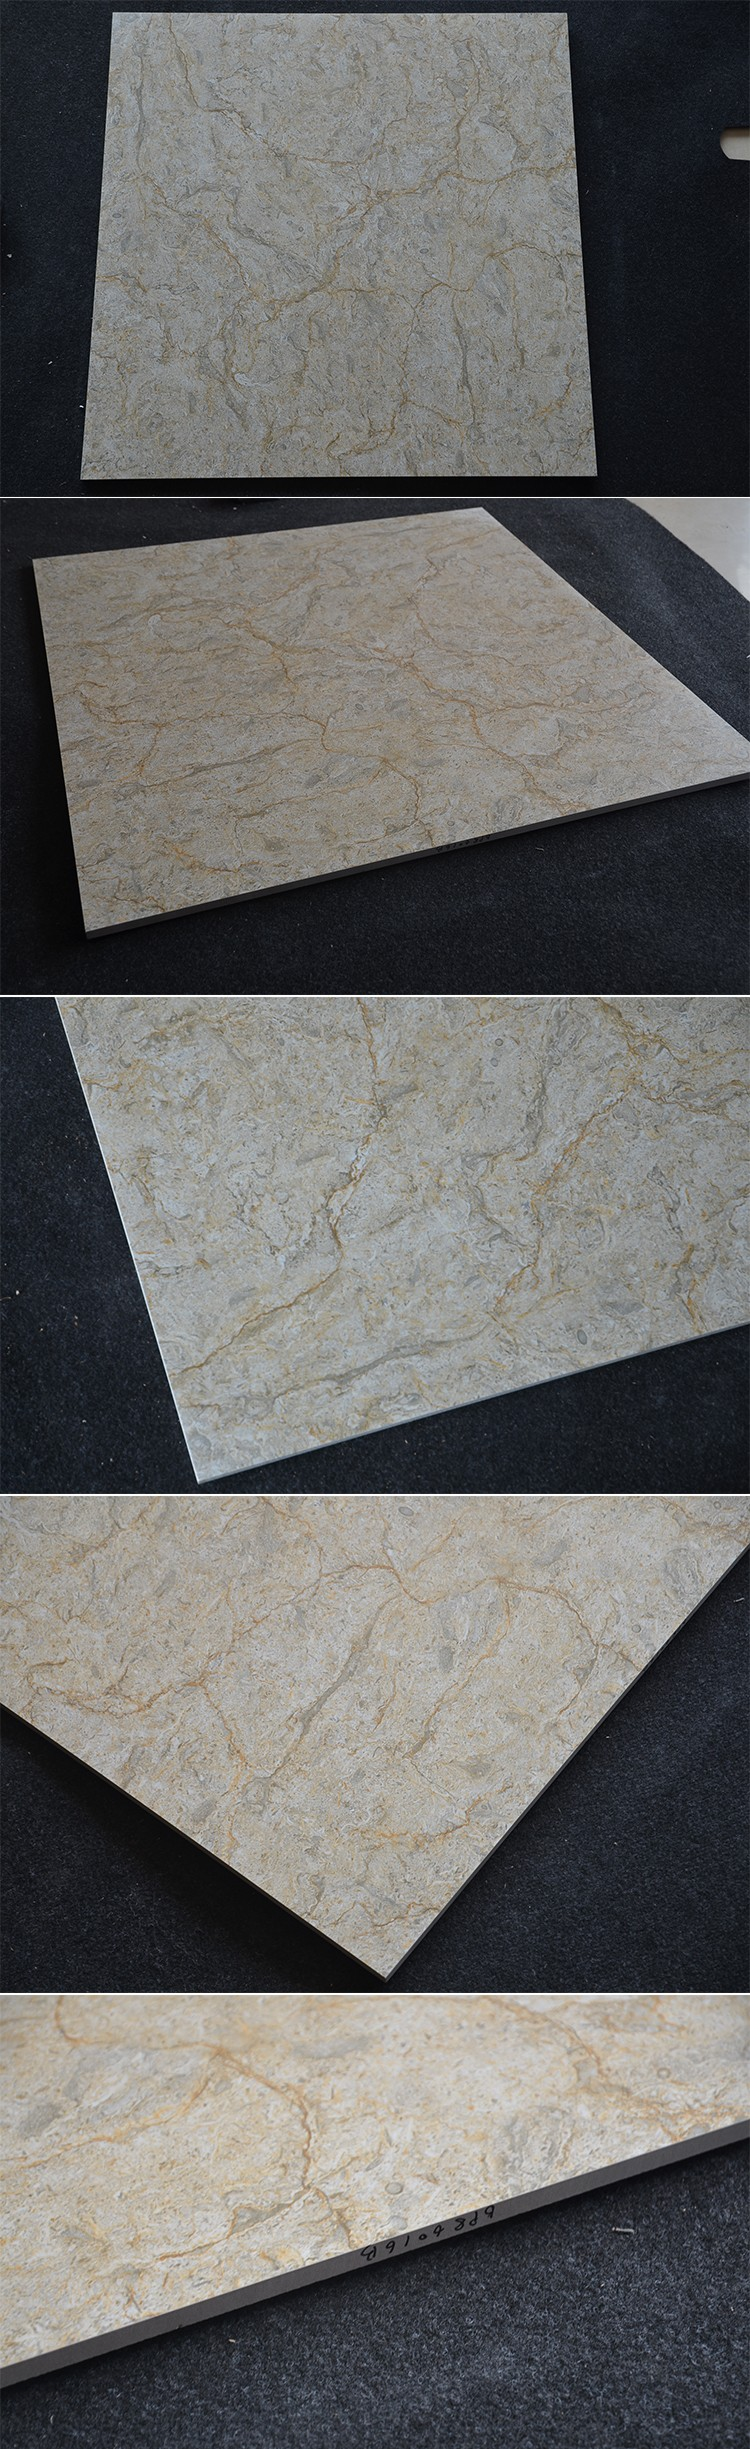 Hmp647m foshan factroy price united states ceramic tile company hmp647m foshan factroy price united states ceramic tile companyvenus ceramic tileverona ceramic dailygadgetfo Image collections